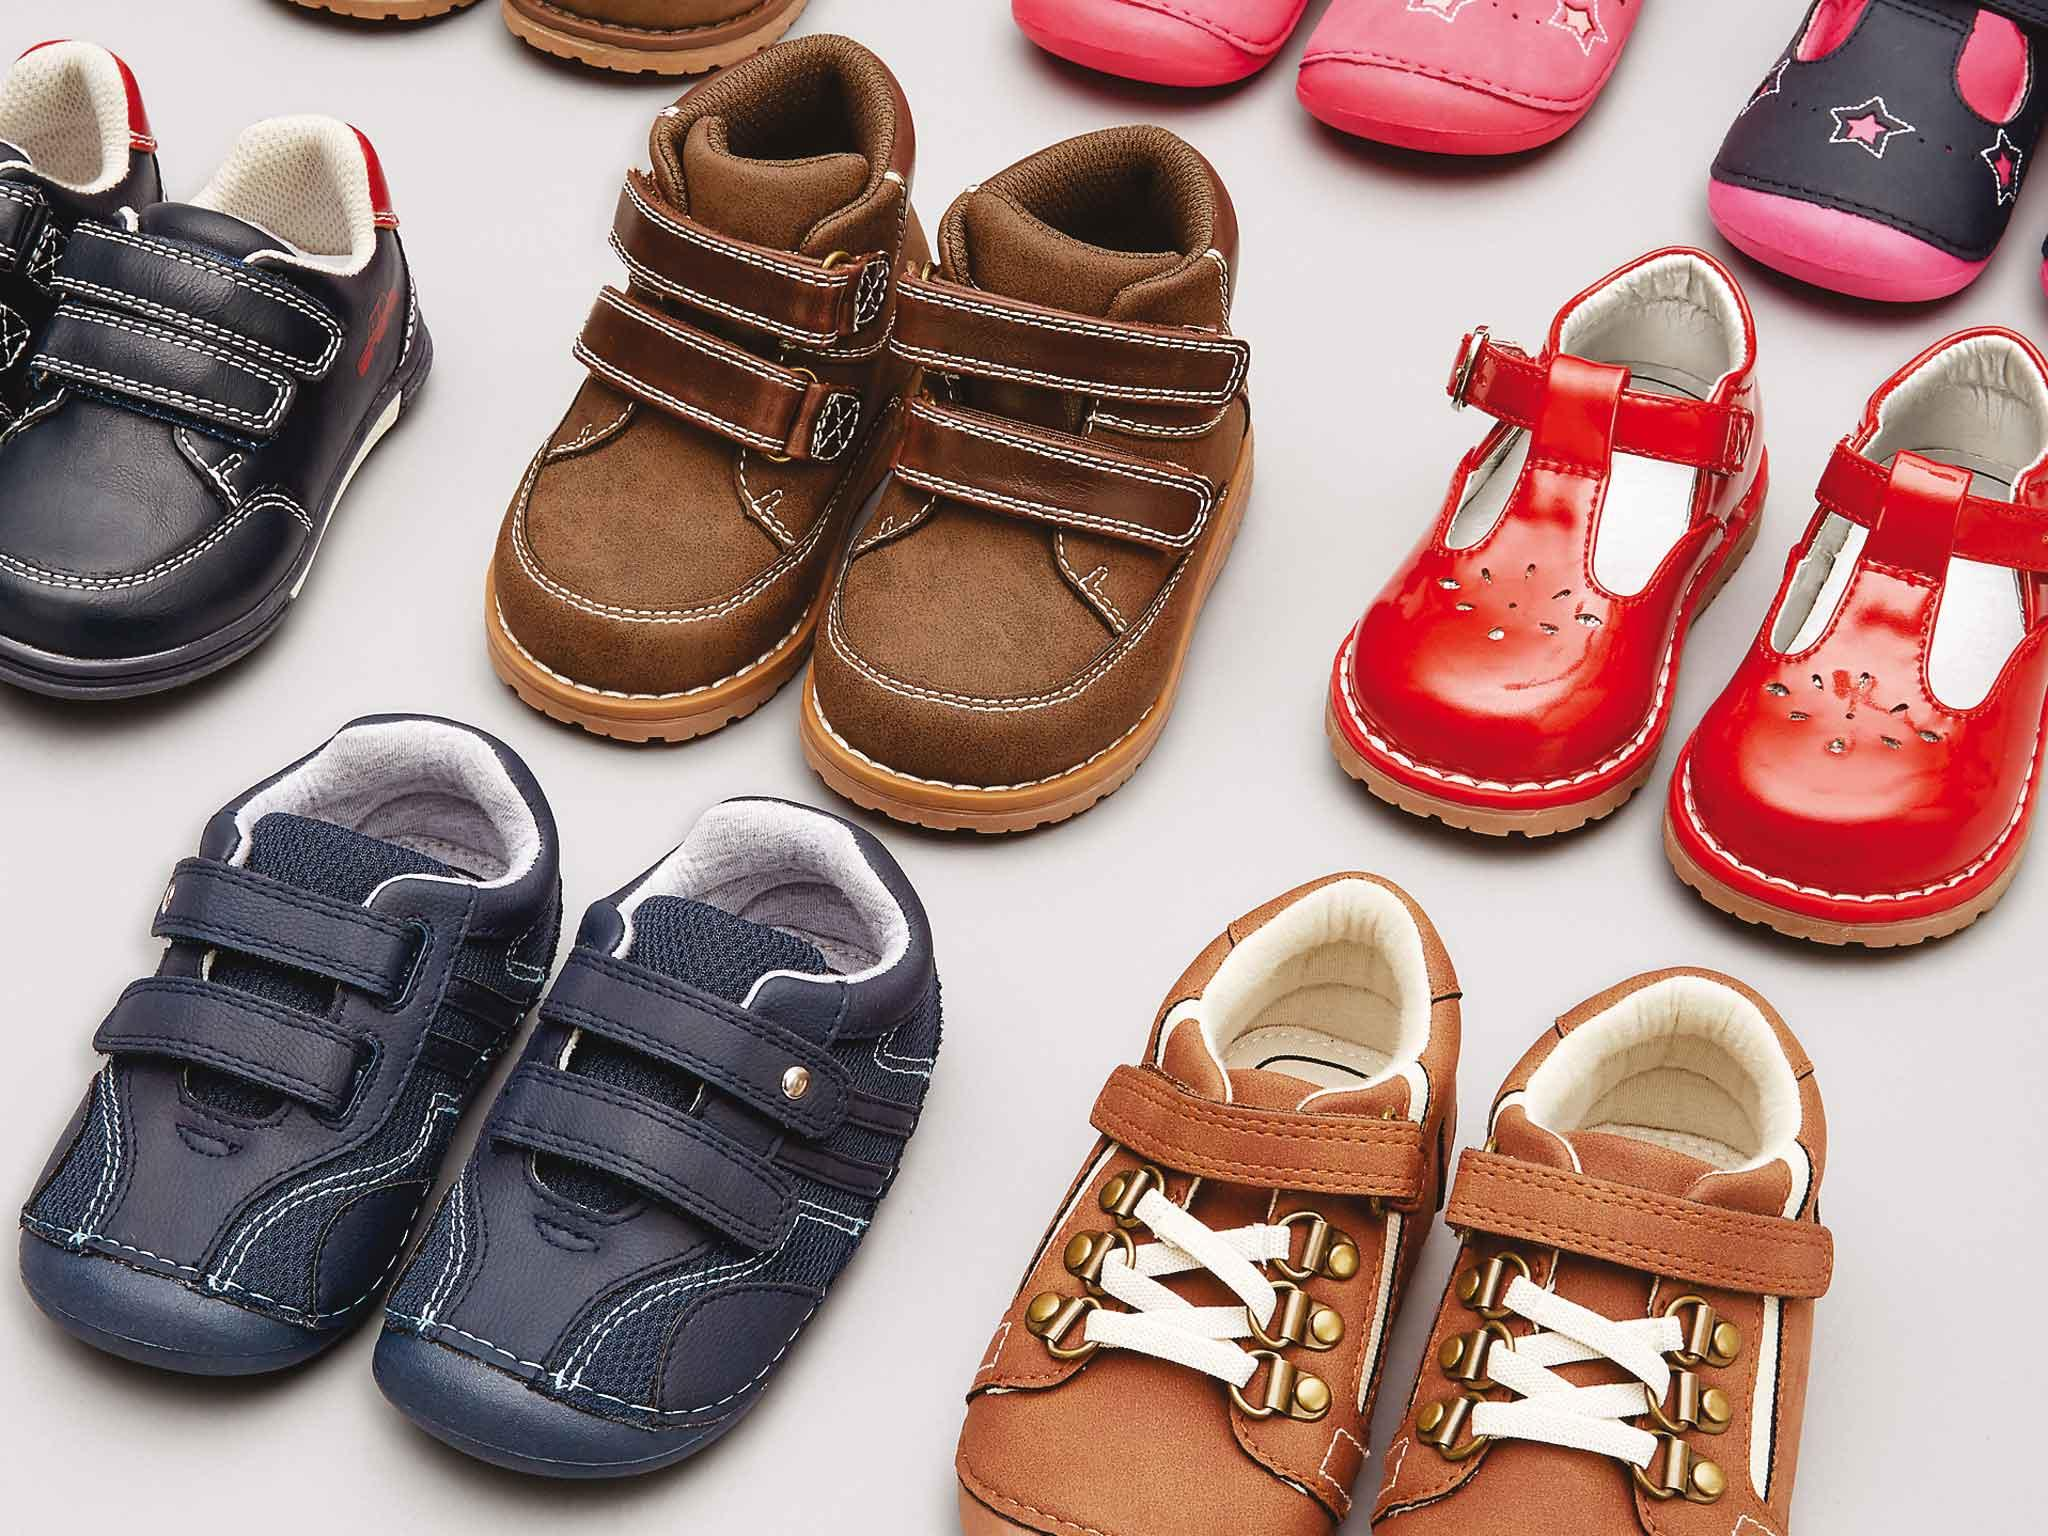 12 Best Kids Shoe Brands The Independent